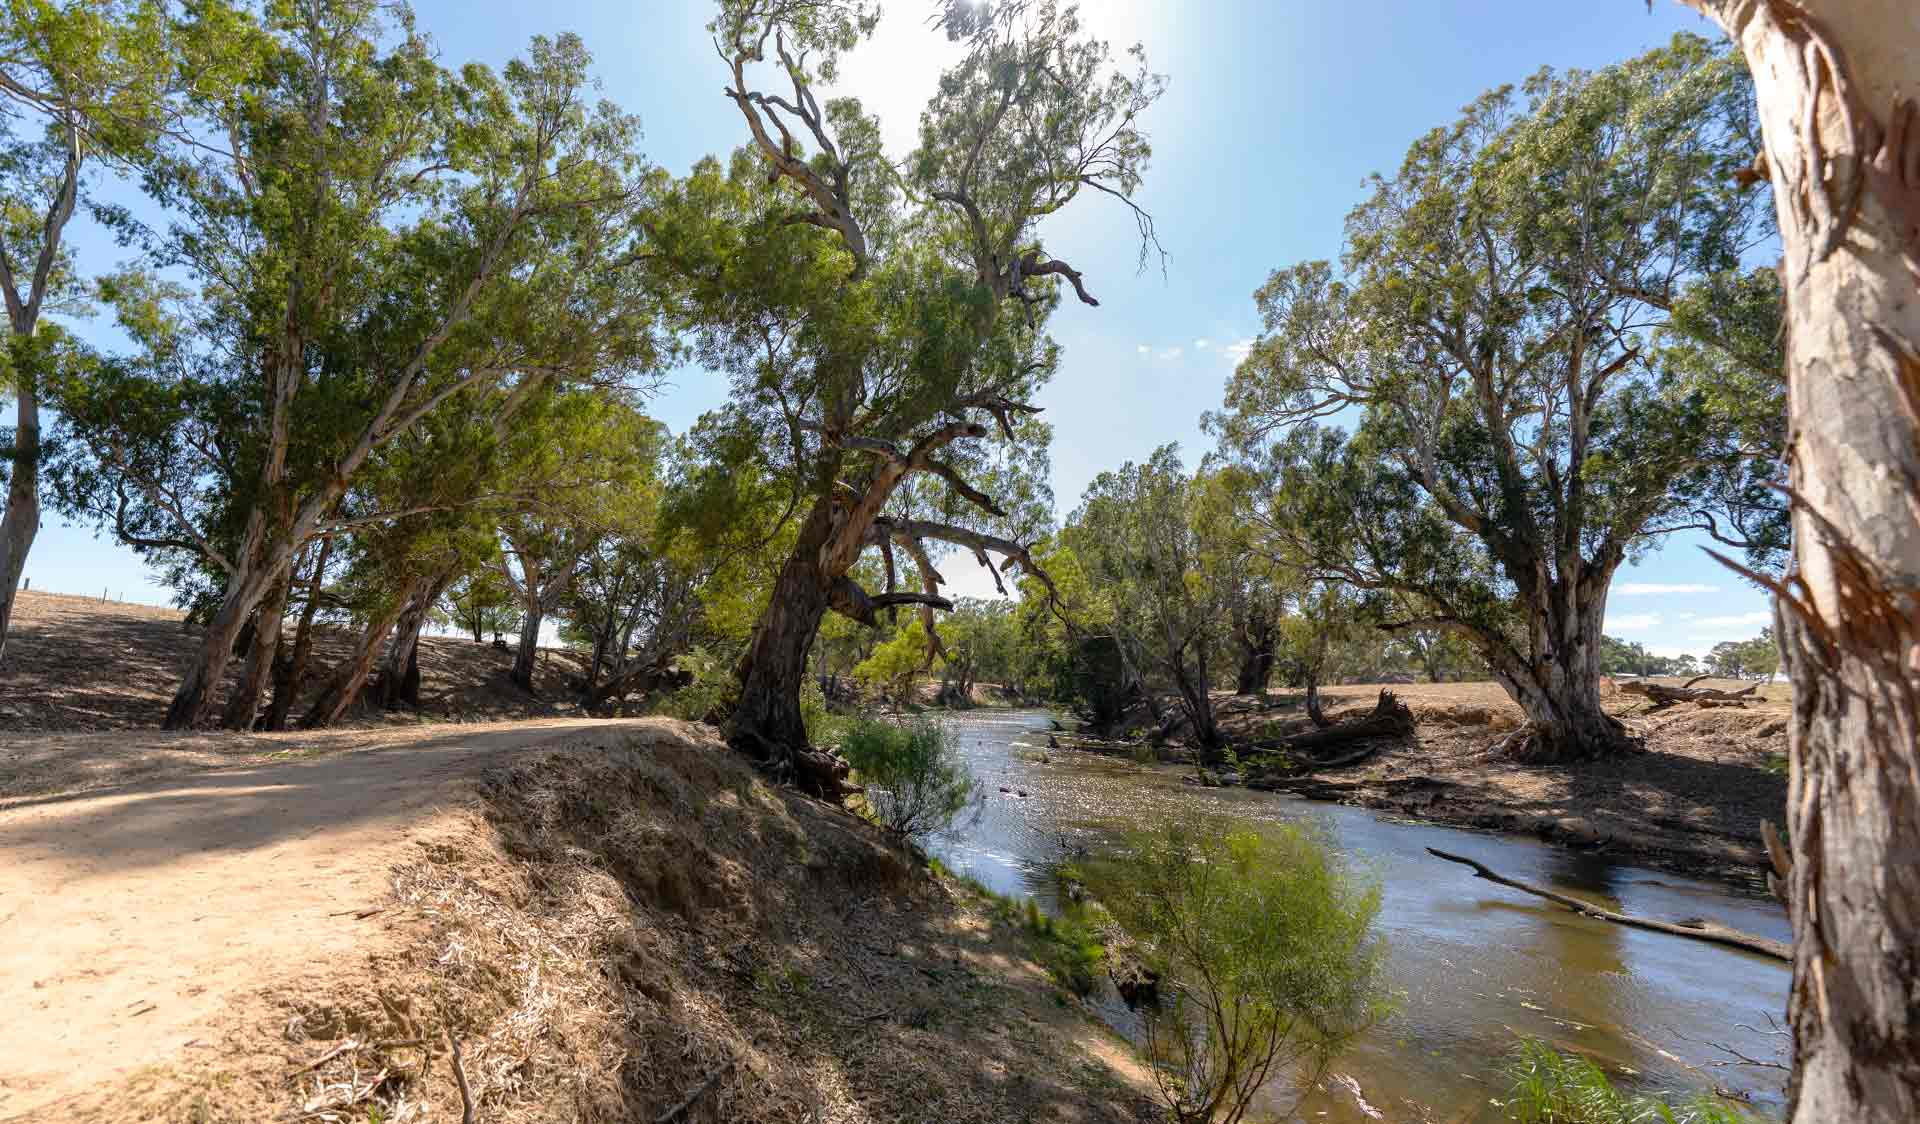 River red gums line the Campaspe River at Rocky Crossing at Greater Bendigo National Park